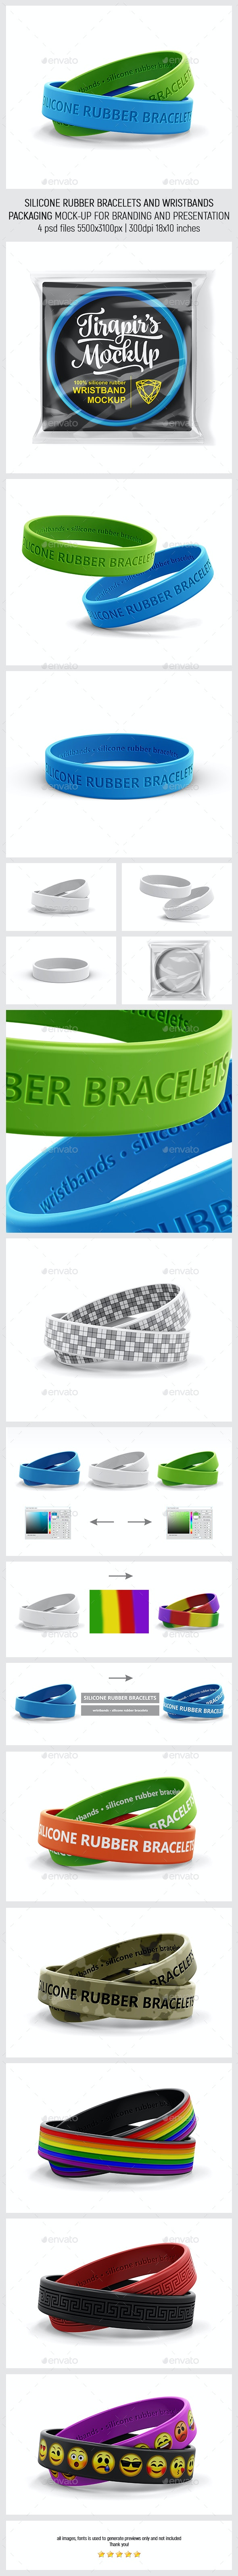 Silicone Rubber Bracelets And Wristbands Packaging MockUp - Miscellaneous Product Mock-Ups